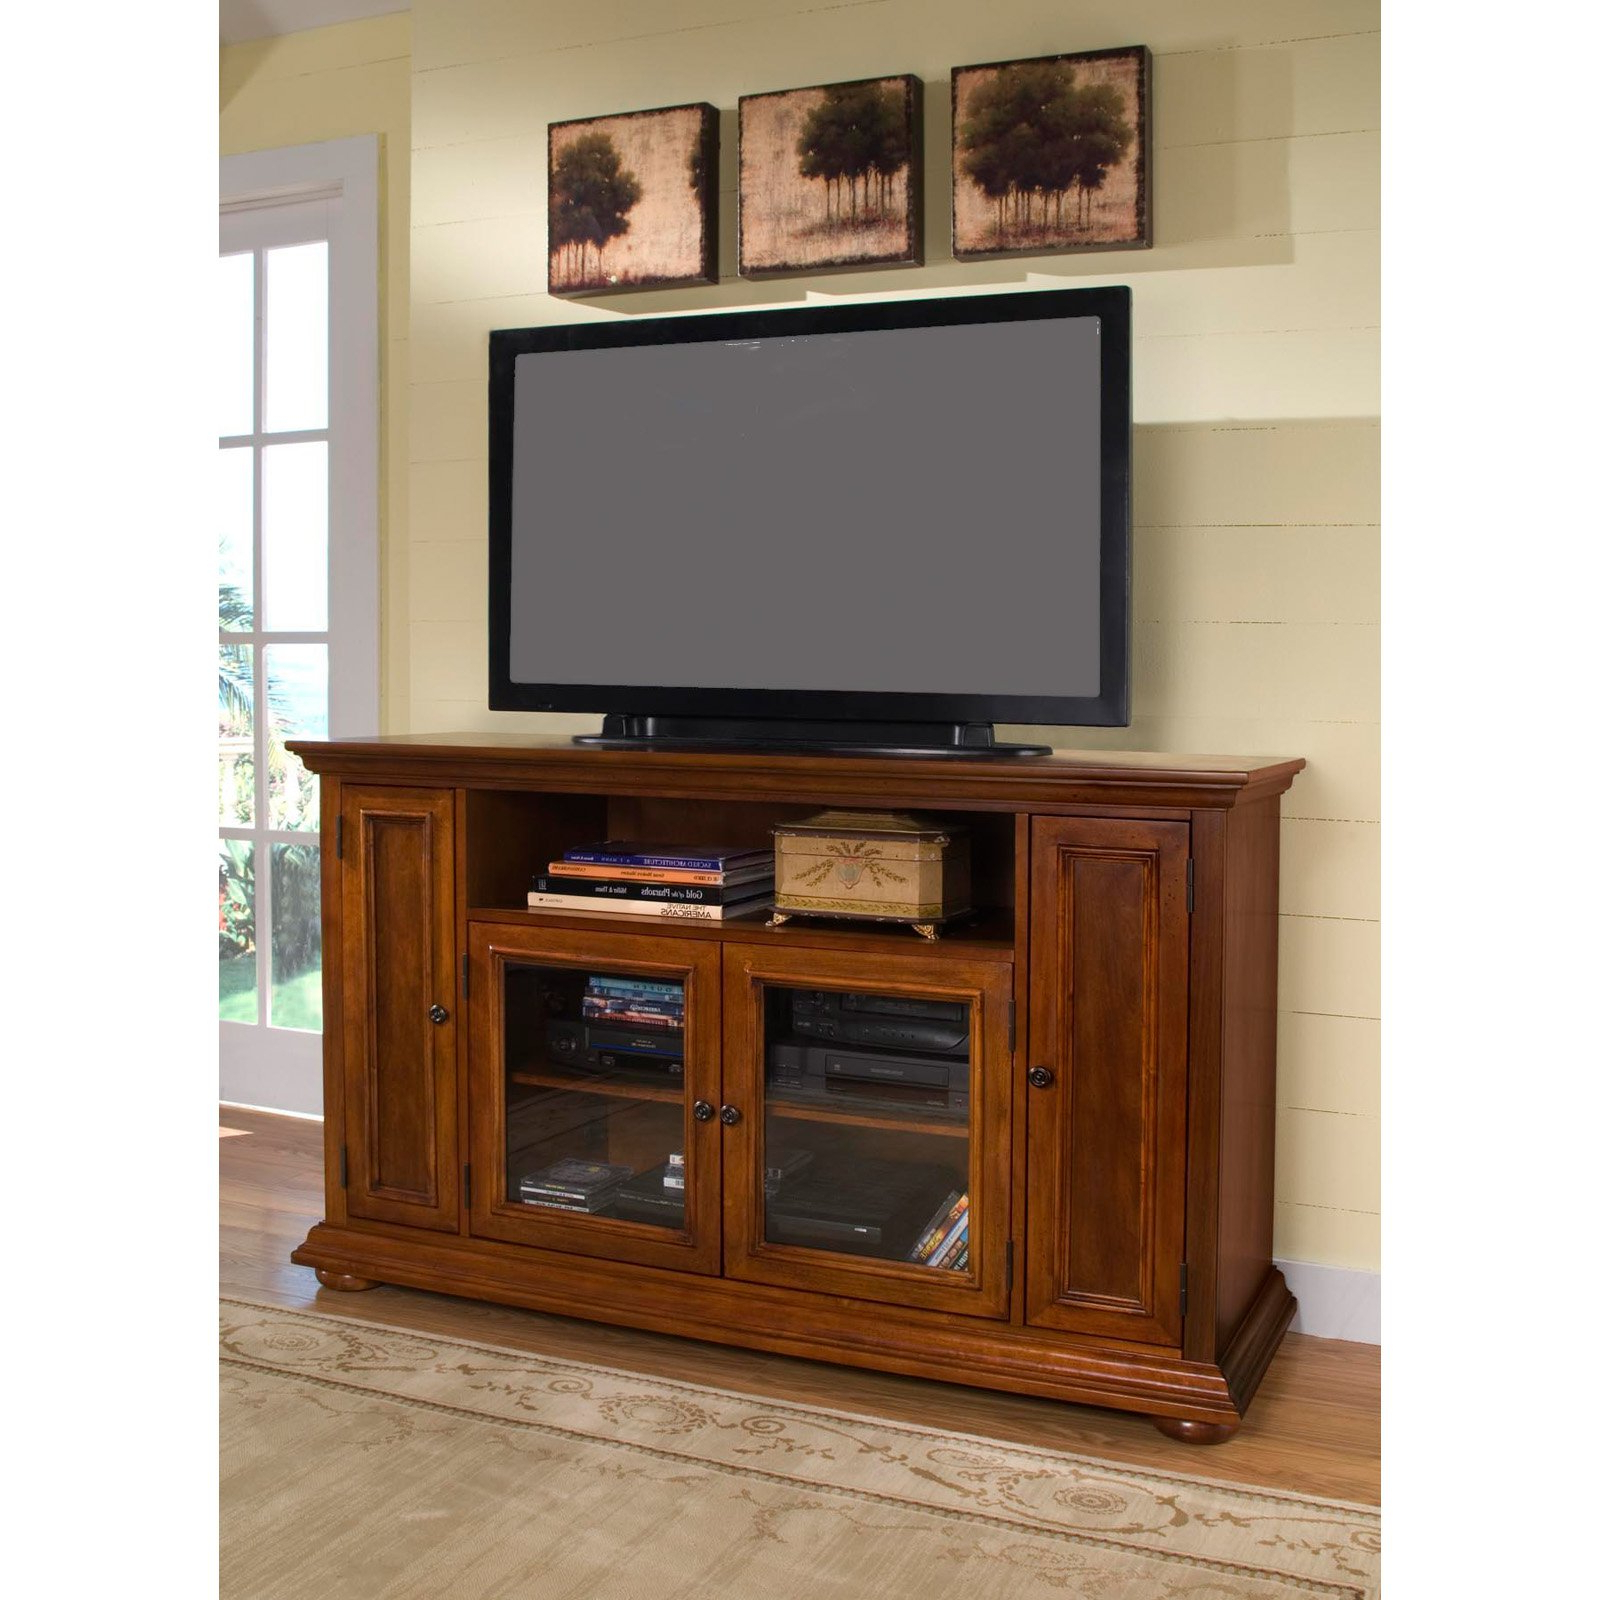 Favorite Pine Wood Tv Stands For Light Brown Pine Wood Tv Stand With Storage Shelf Of Tall (View 4 of 20)